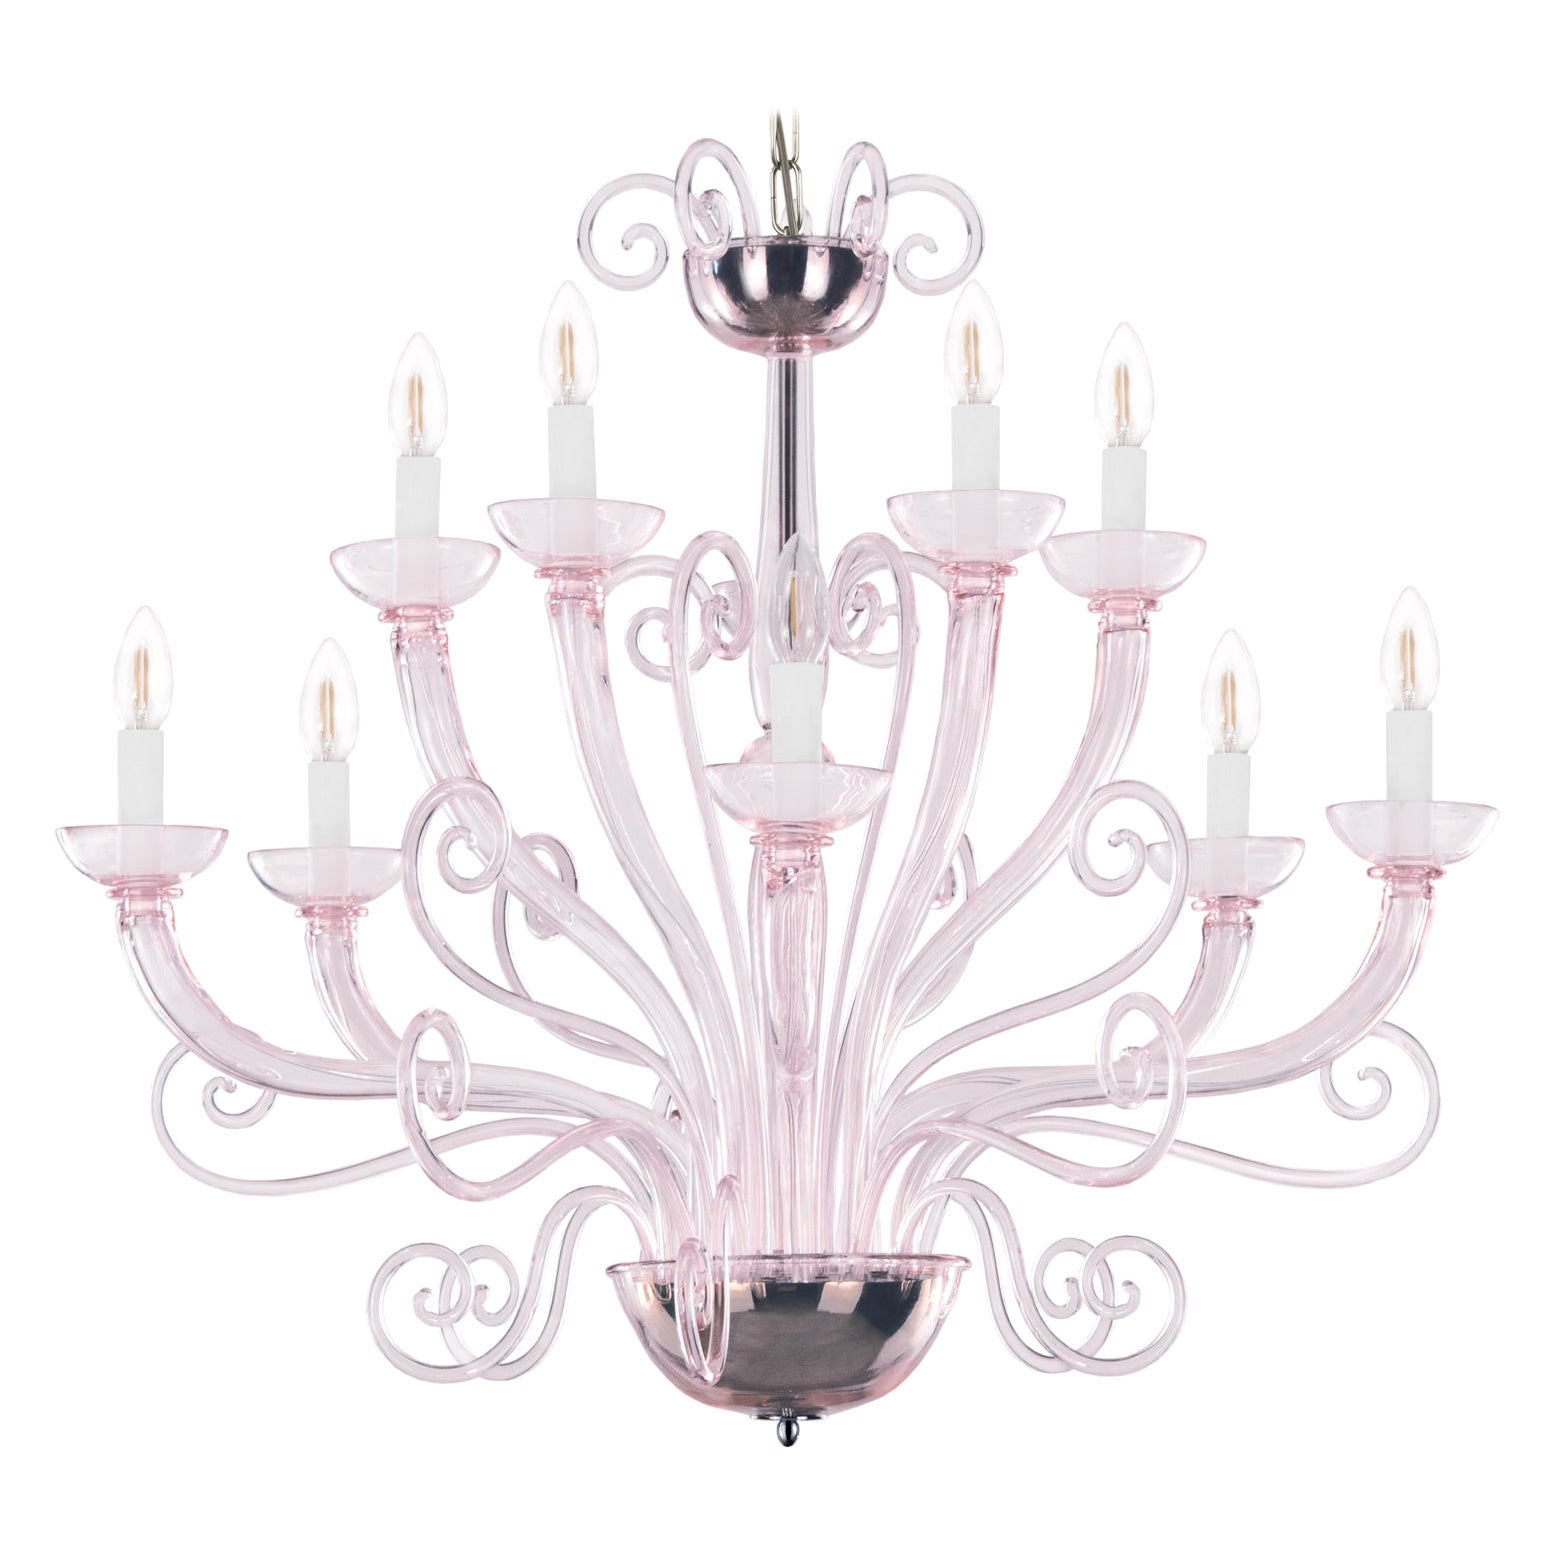 21st Century Venetian Chandelier 10 Arms Light Pink Murano Glass by Multiforme